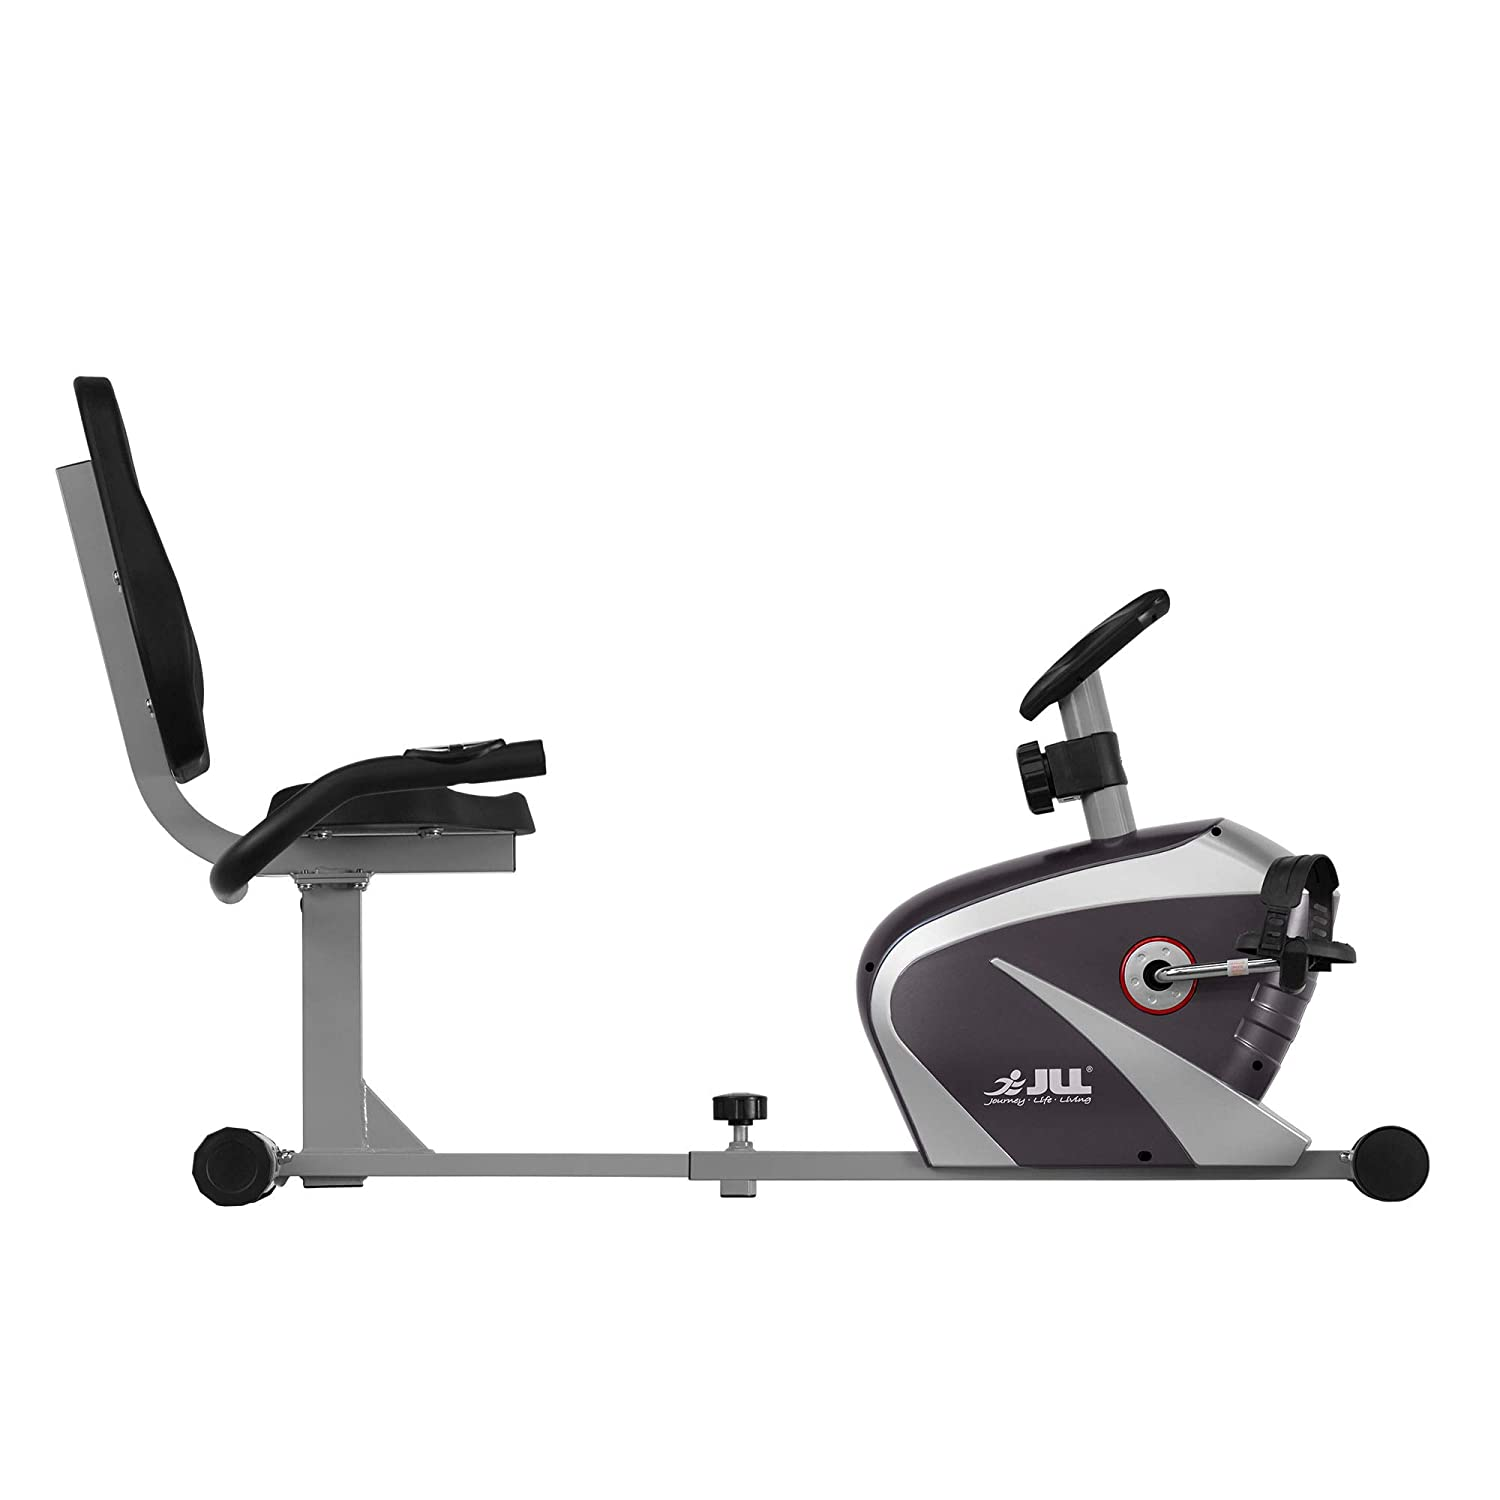 JLL RE100 Recumbent Home Exercise Bike  5kg Two-Way Flywheel with 8 Levels  of Magnetic Resistance  6 - Levels of Seat Adjustments, Monitor Displays